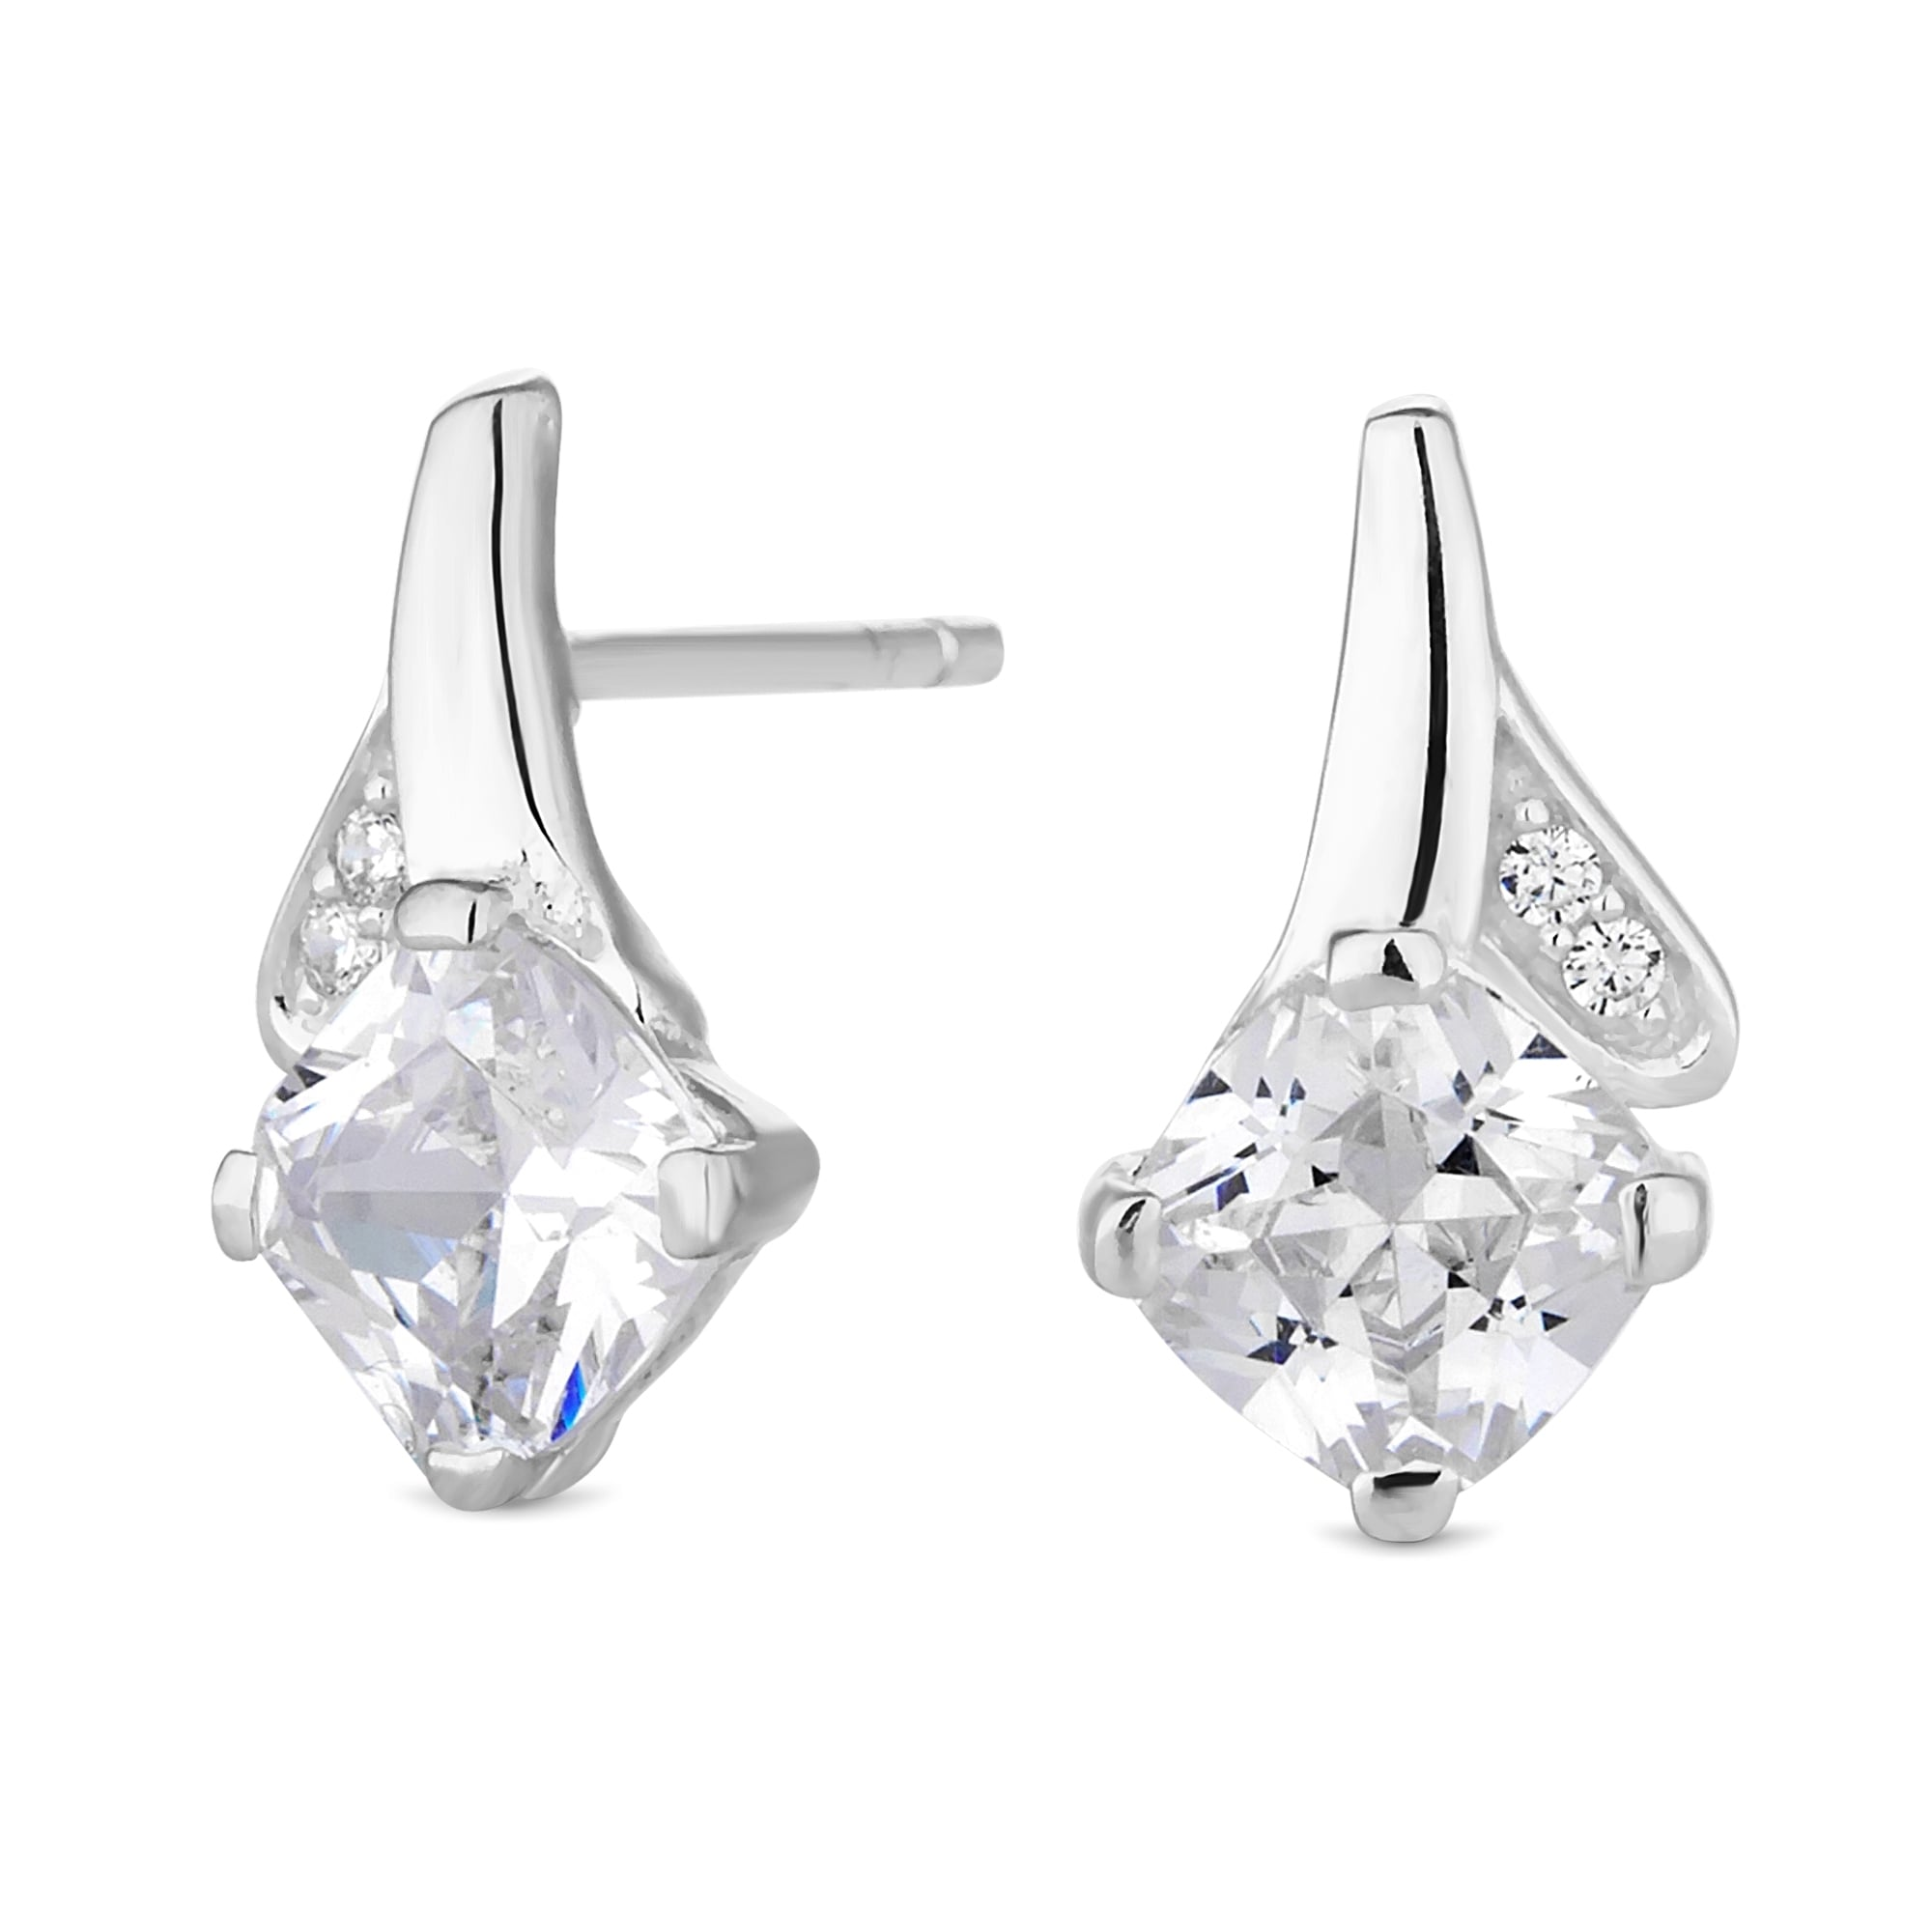 earrings stud white cubic zirconia gold